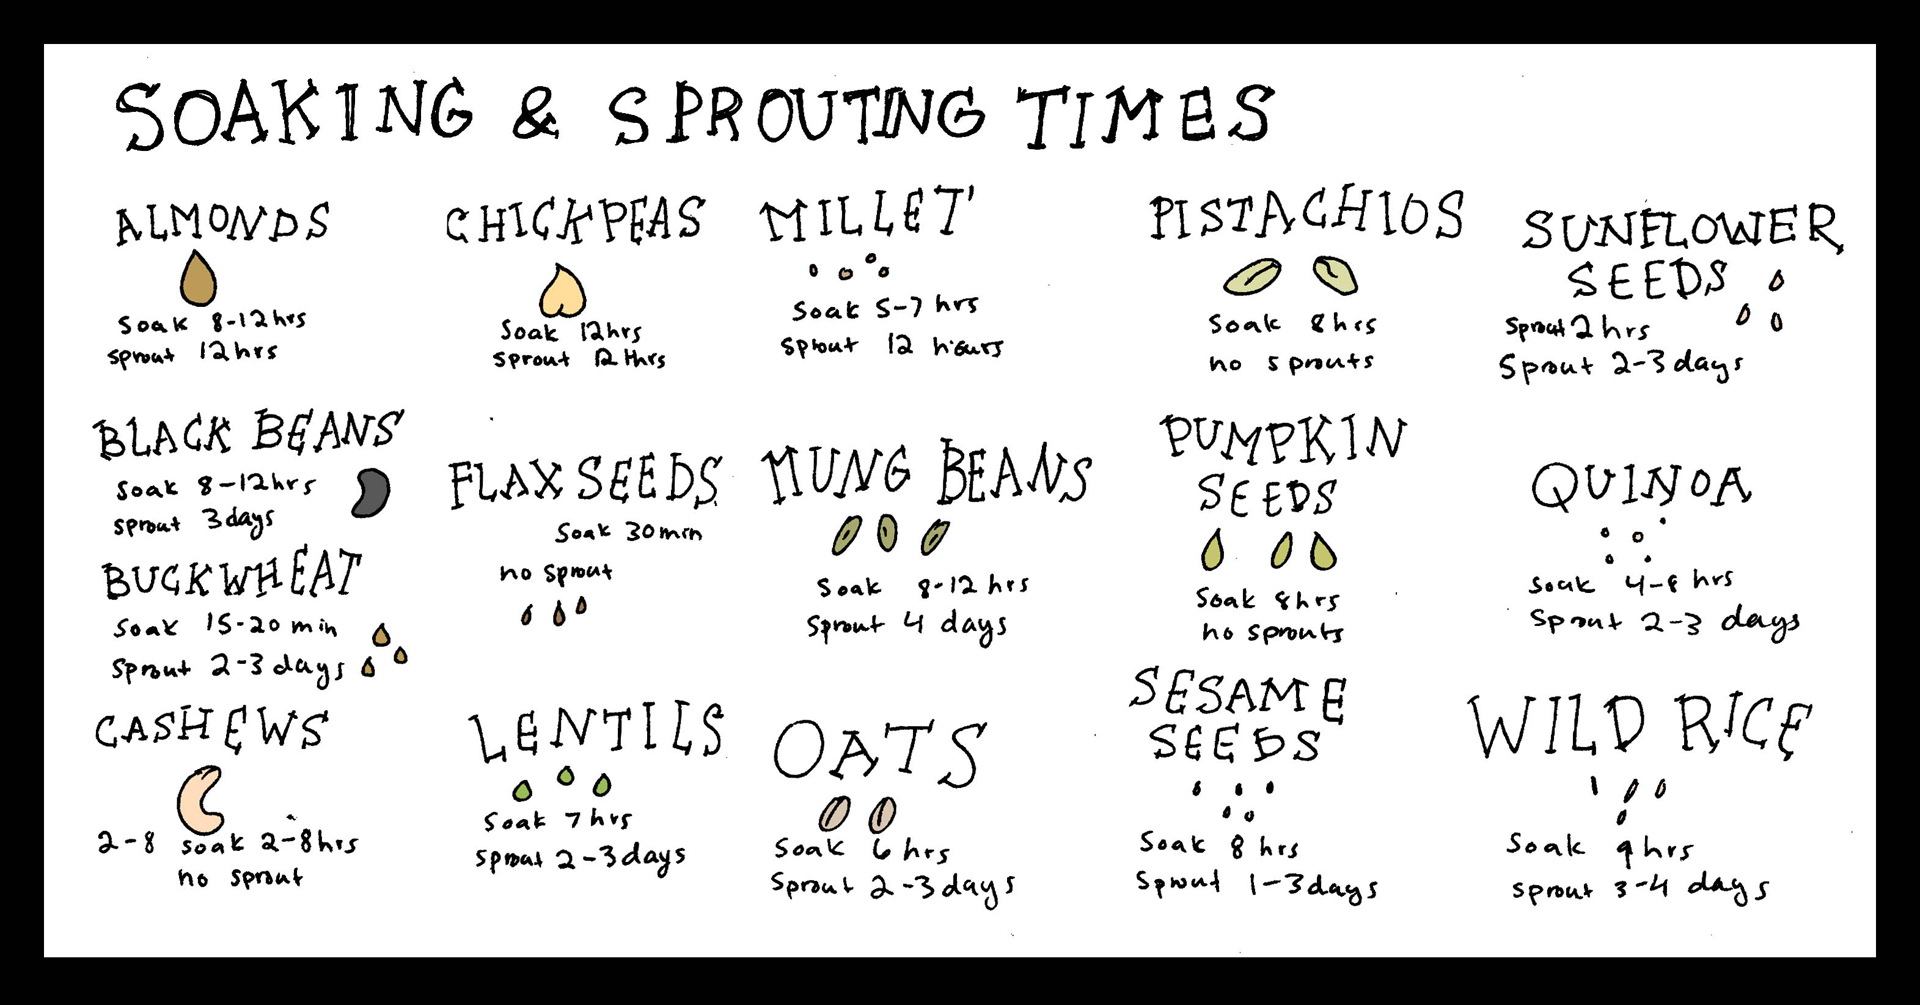 Soaking & Sprouting Times